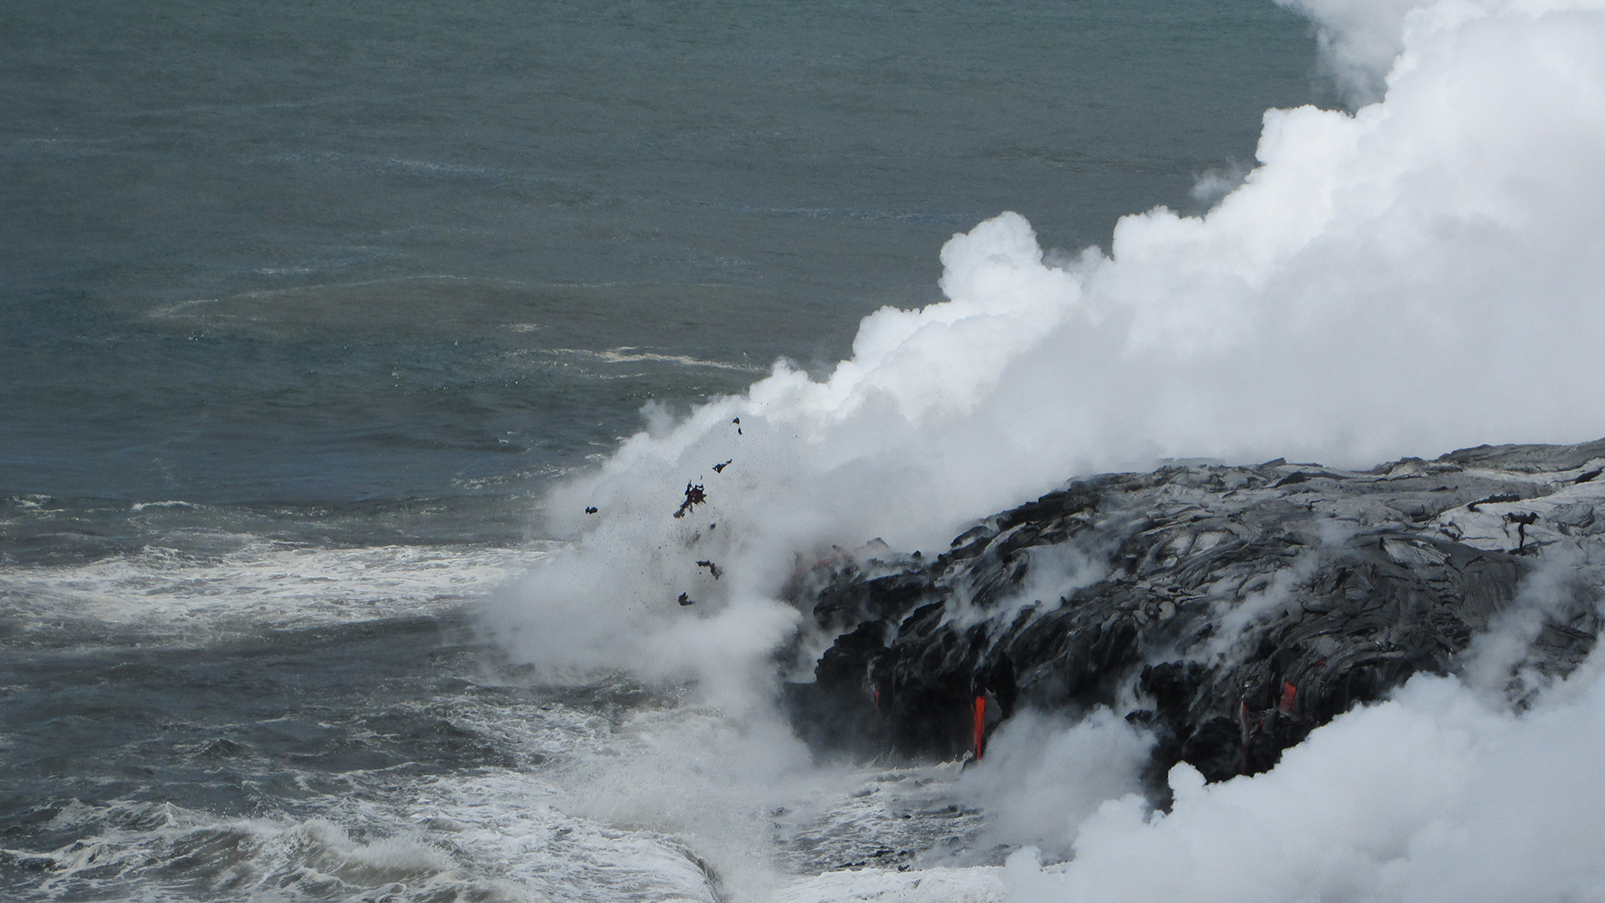 Lava Ocean Entry Plume Focus Of Volcano Watch